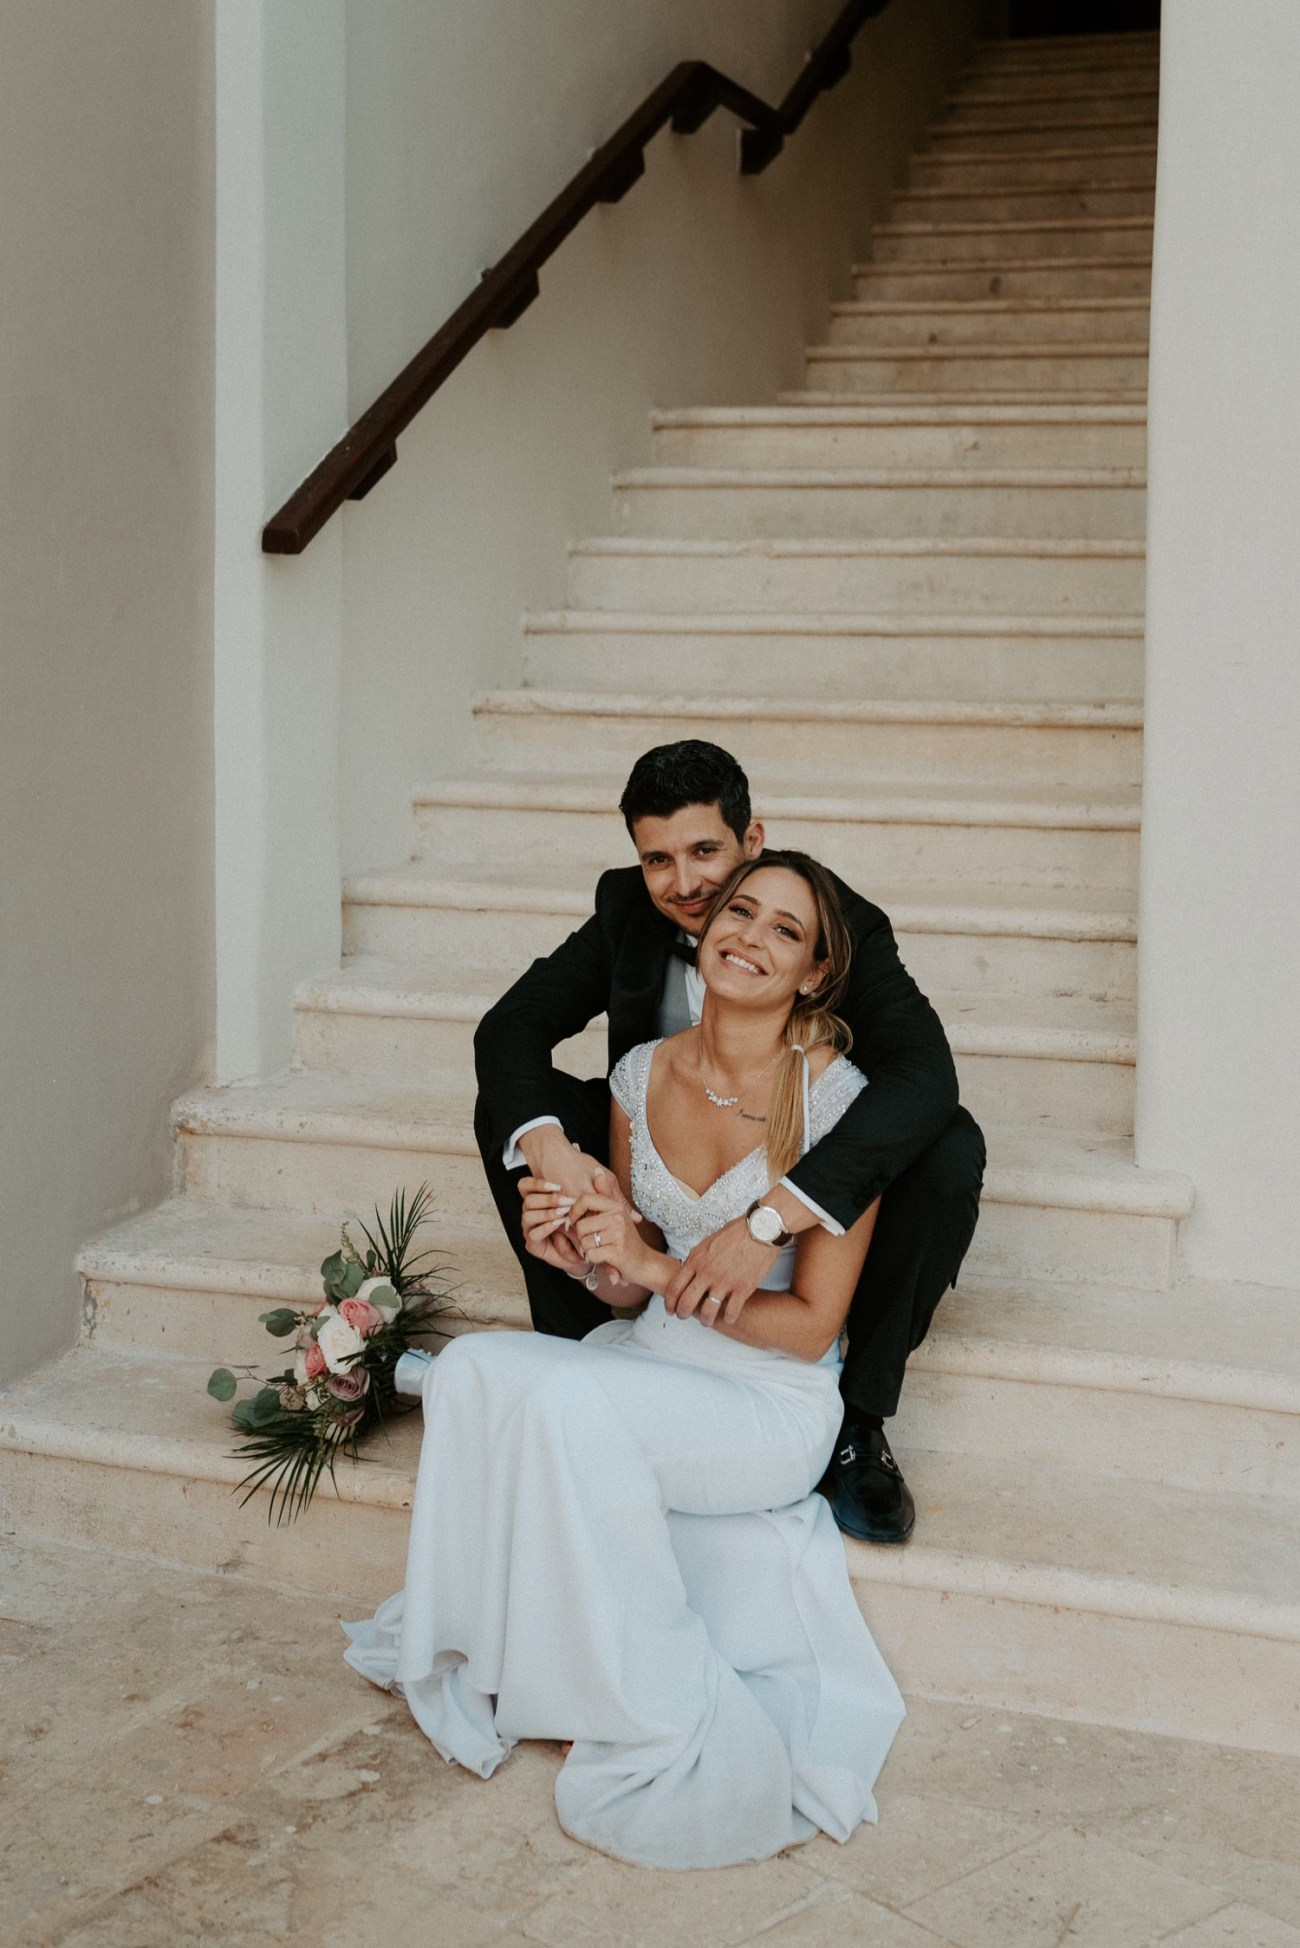 Cancun Destination Wedding Mexico Tulum Wedding Photographer Anais Possamai Photography 051